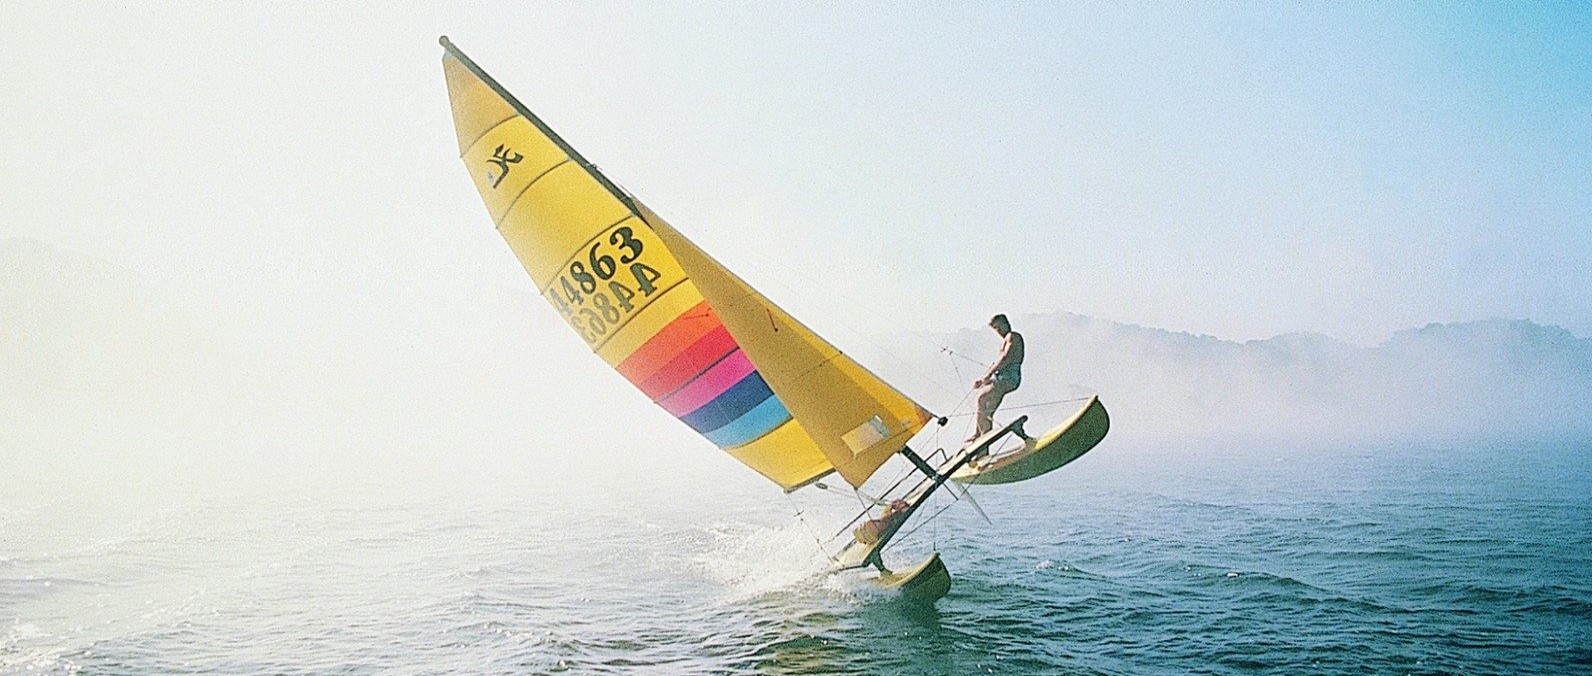 congratulations-hobie-cat-the-most-famous-catamaran-in-the-world-is-50-years-old